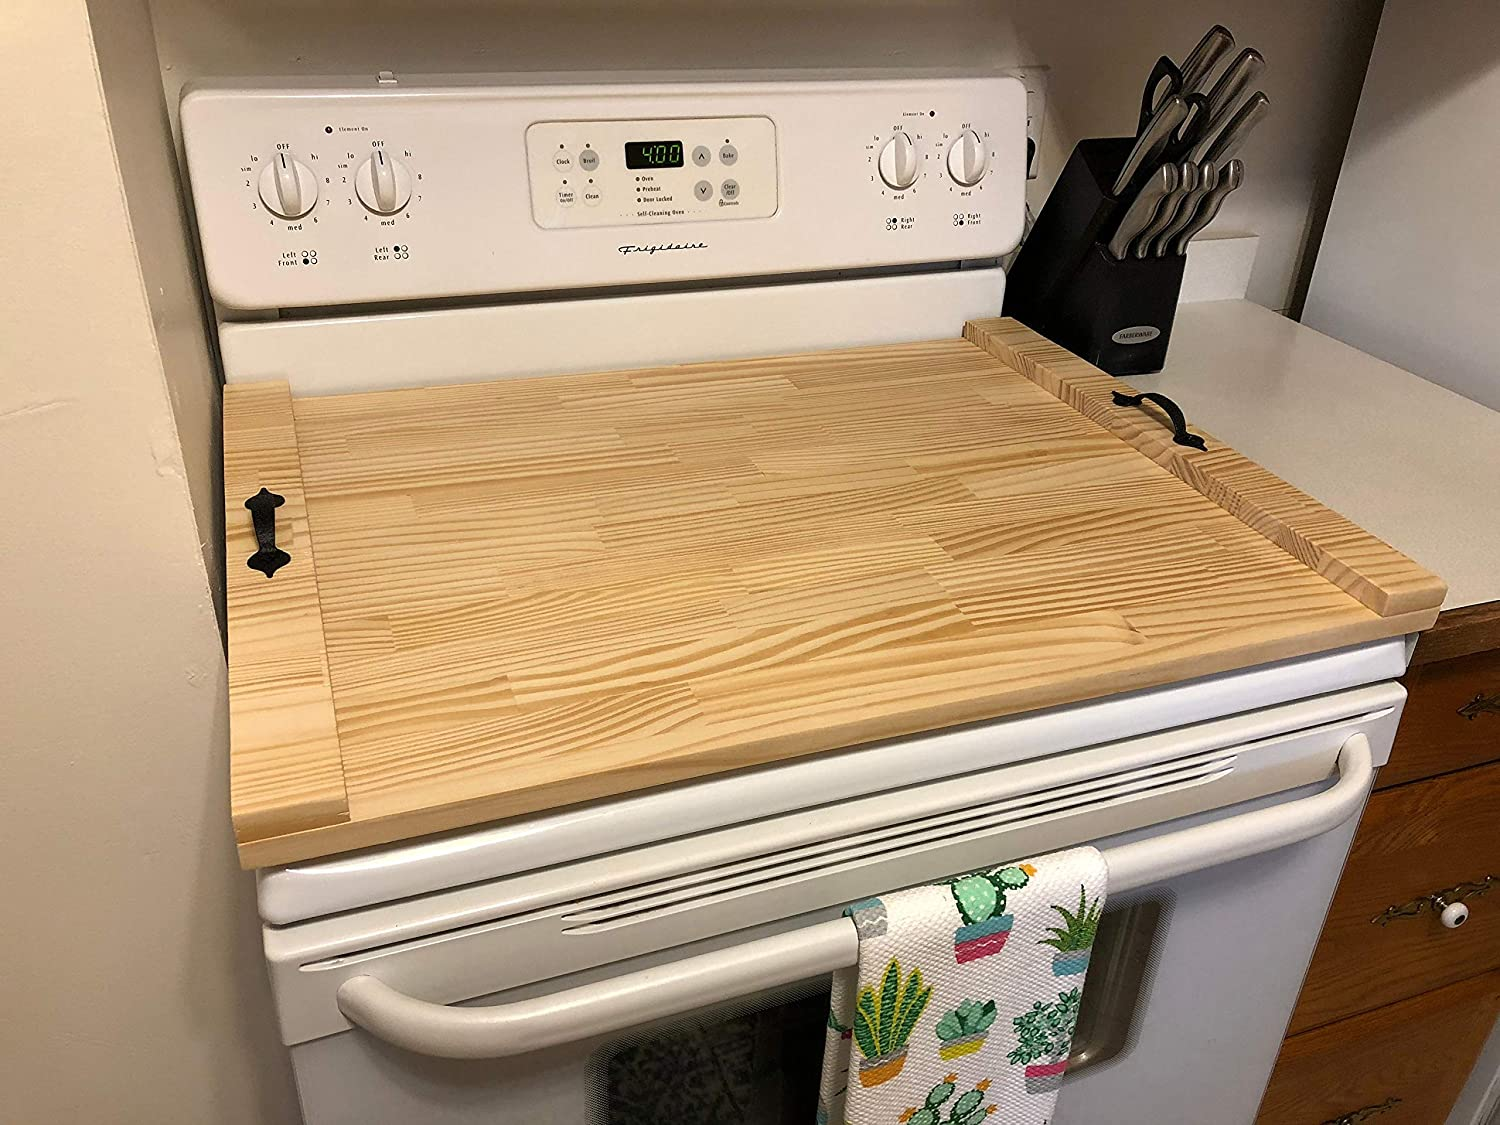 Wooden Tray For Stove Stove Tray Stove Top Tray Rustic Stove Top Cover Decorative Tray Cooktop